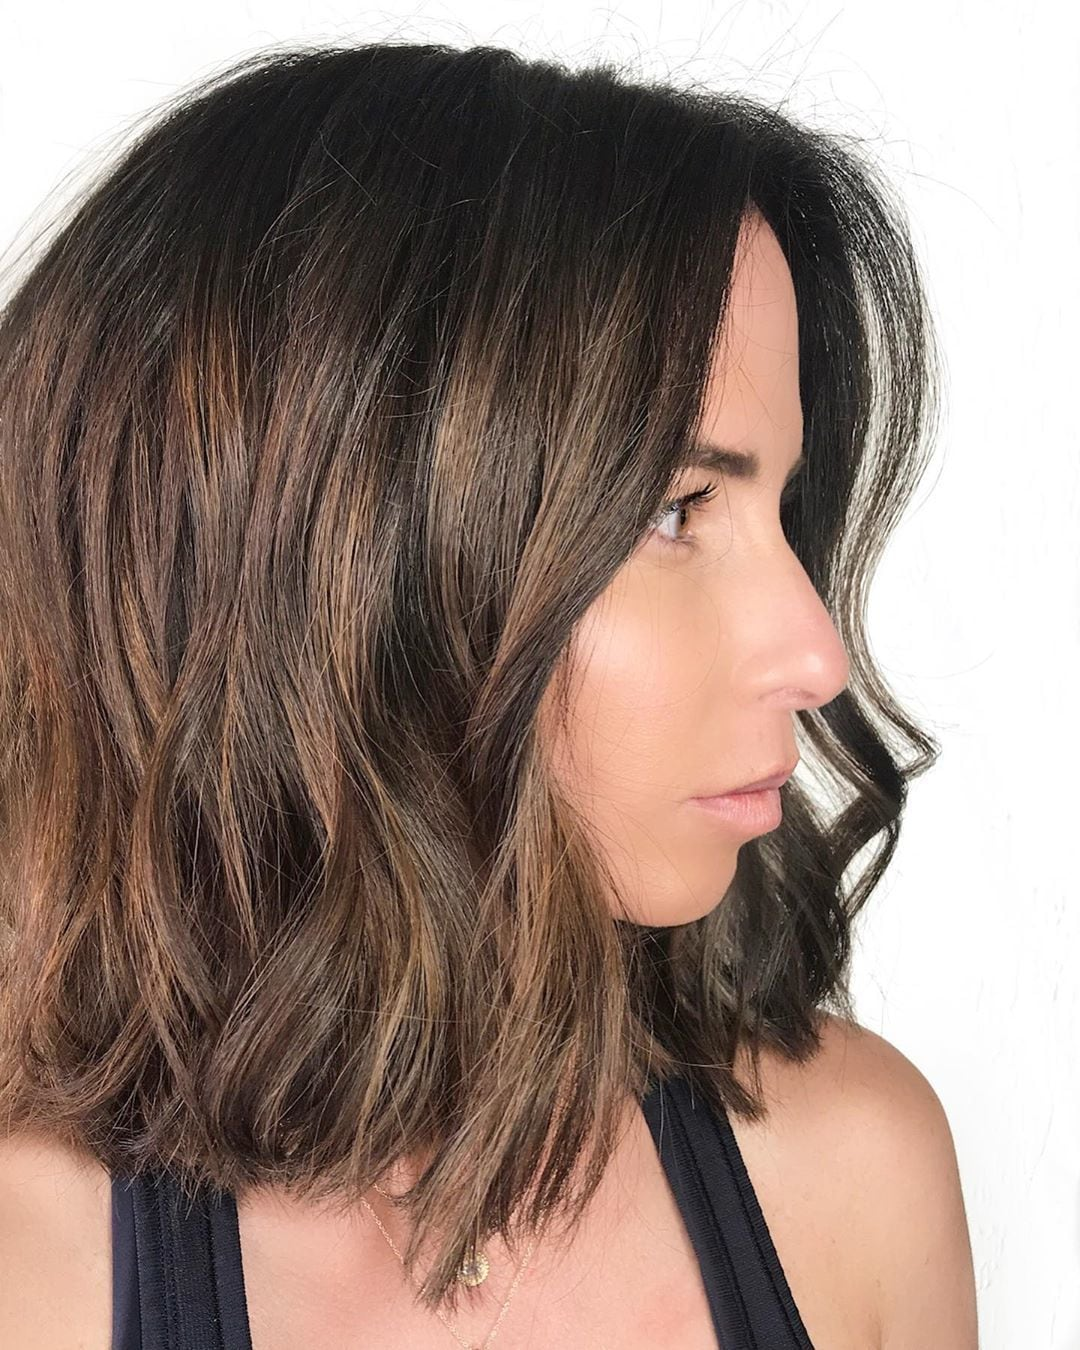 Woman with long bob haircut with light chocolate balayage highlights in it